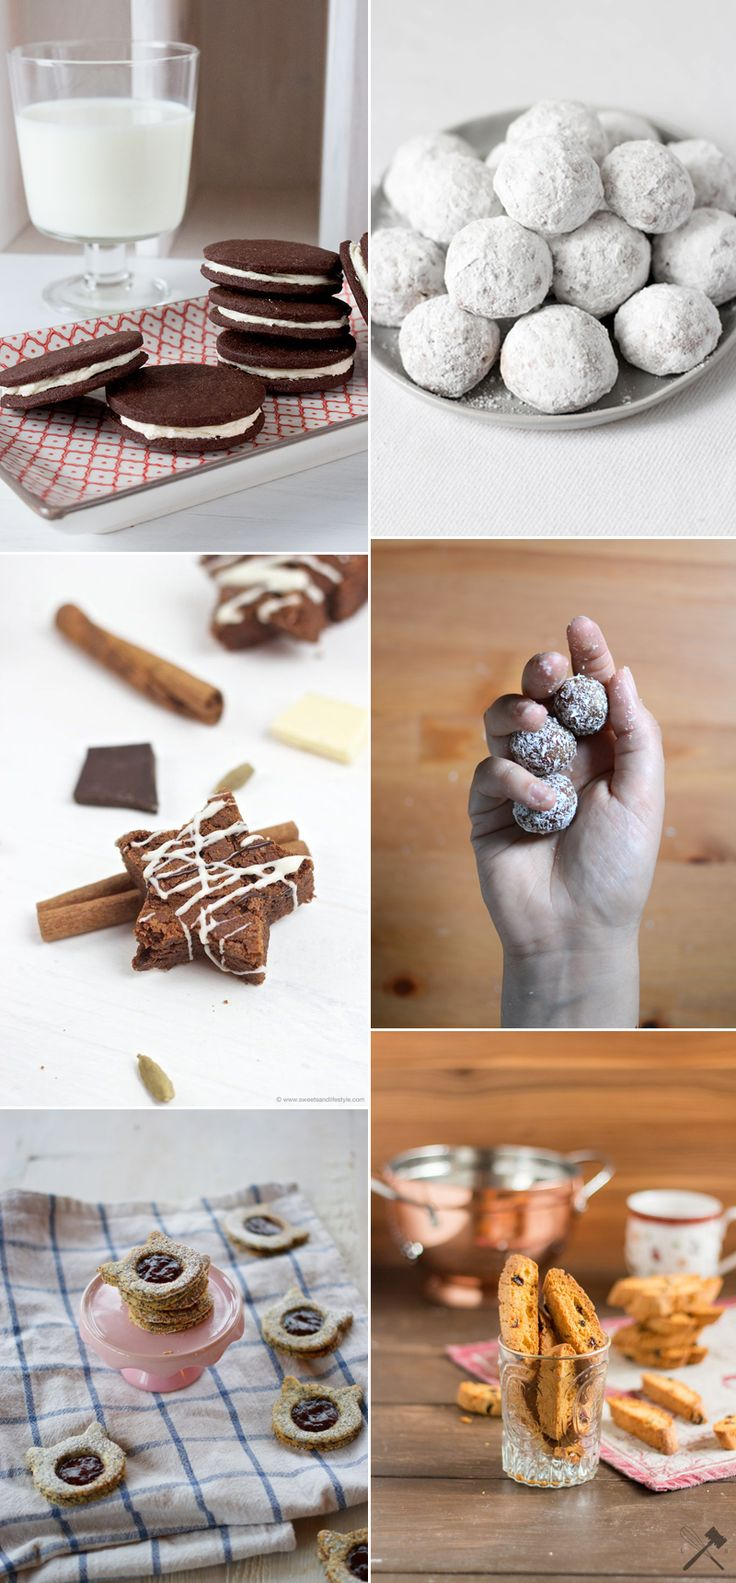 we love handmade | we love Inspiration: Keksrezepte | http://welovehandmade.at